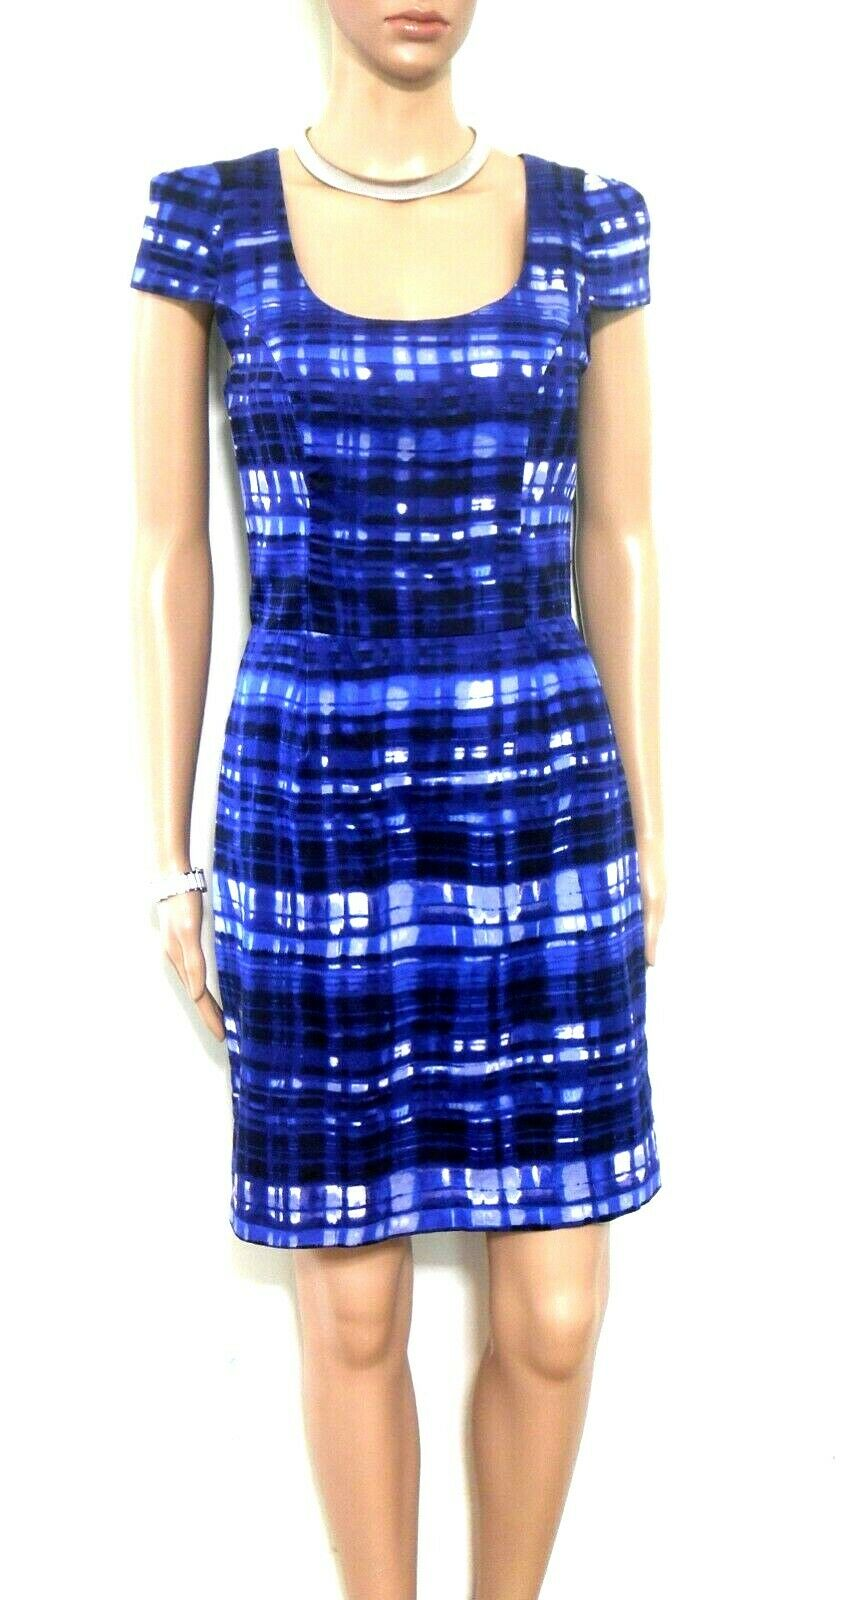 Review dress, dark blue check, sz. 8 - chic casual style, exc. cnd.